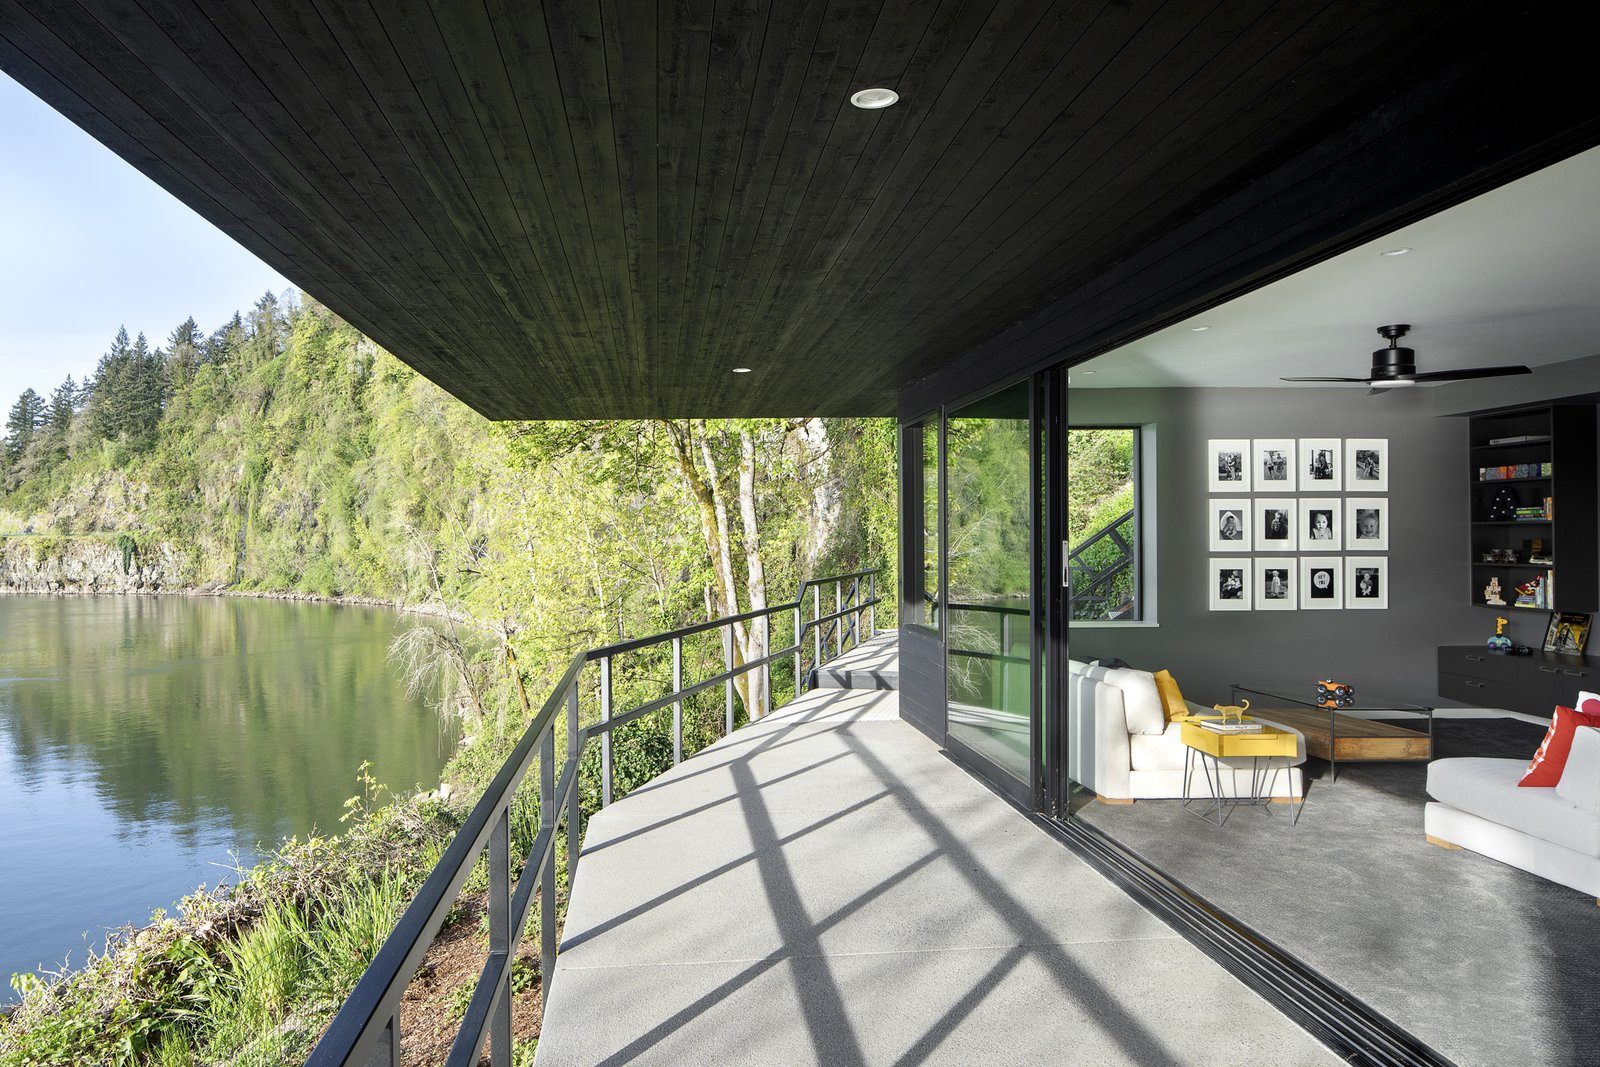 Family room on 1st floor opening up to the a small patio leading to the boat dock at the river.  Riverwood